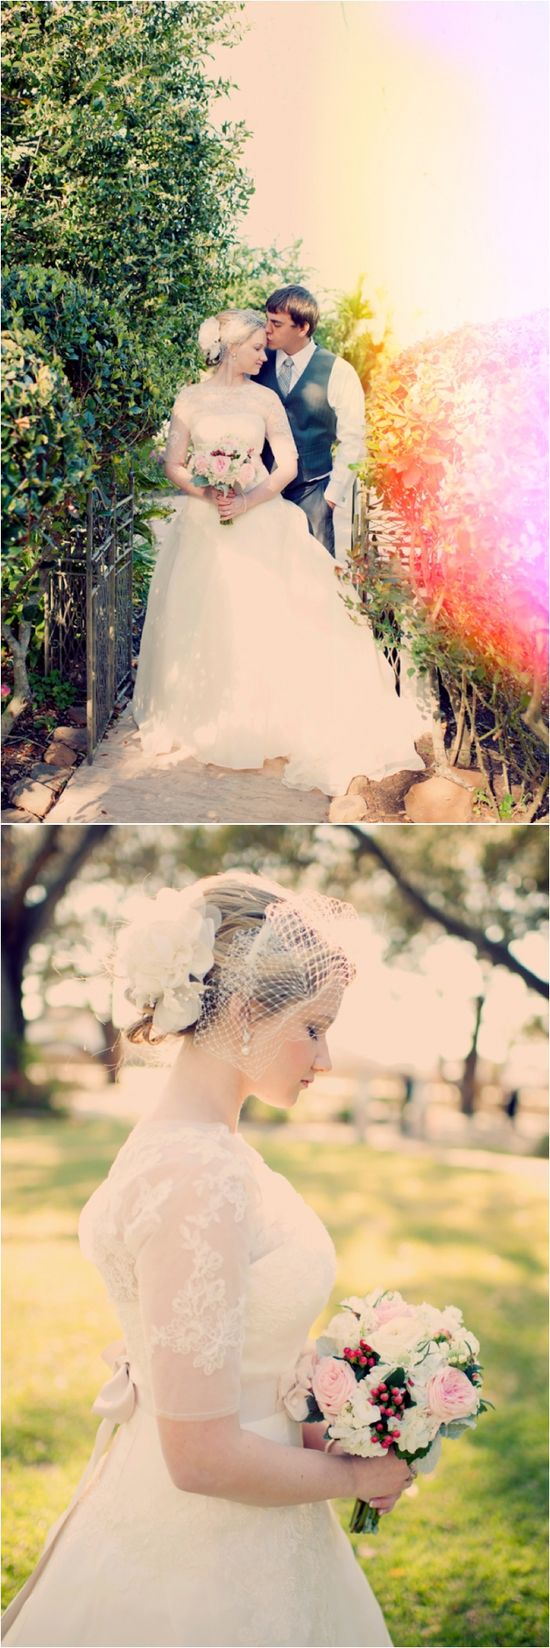 Vintage style bridal photos ~ Photo: Joyeuse Photography